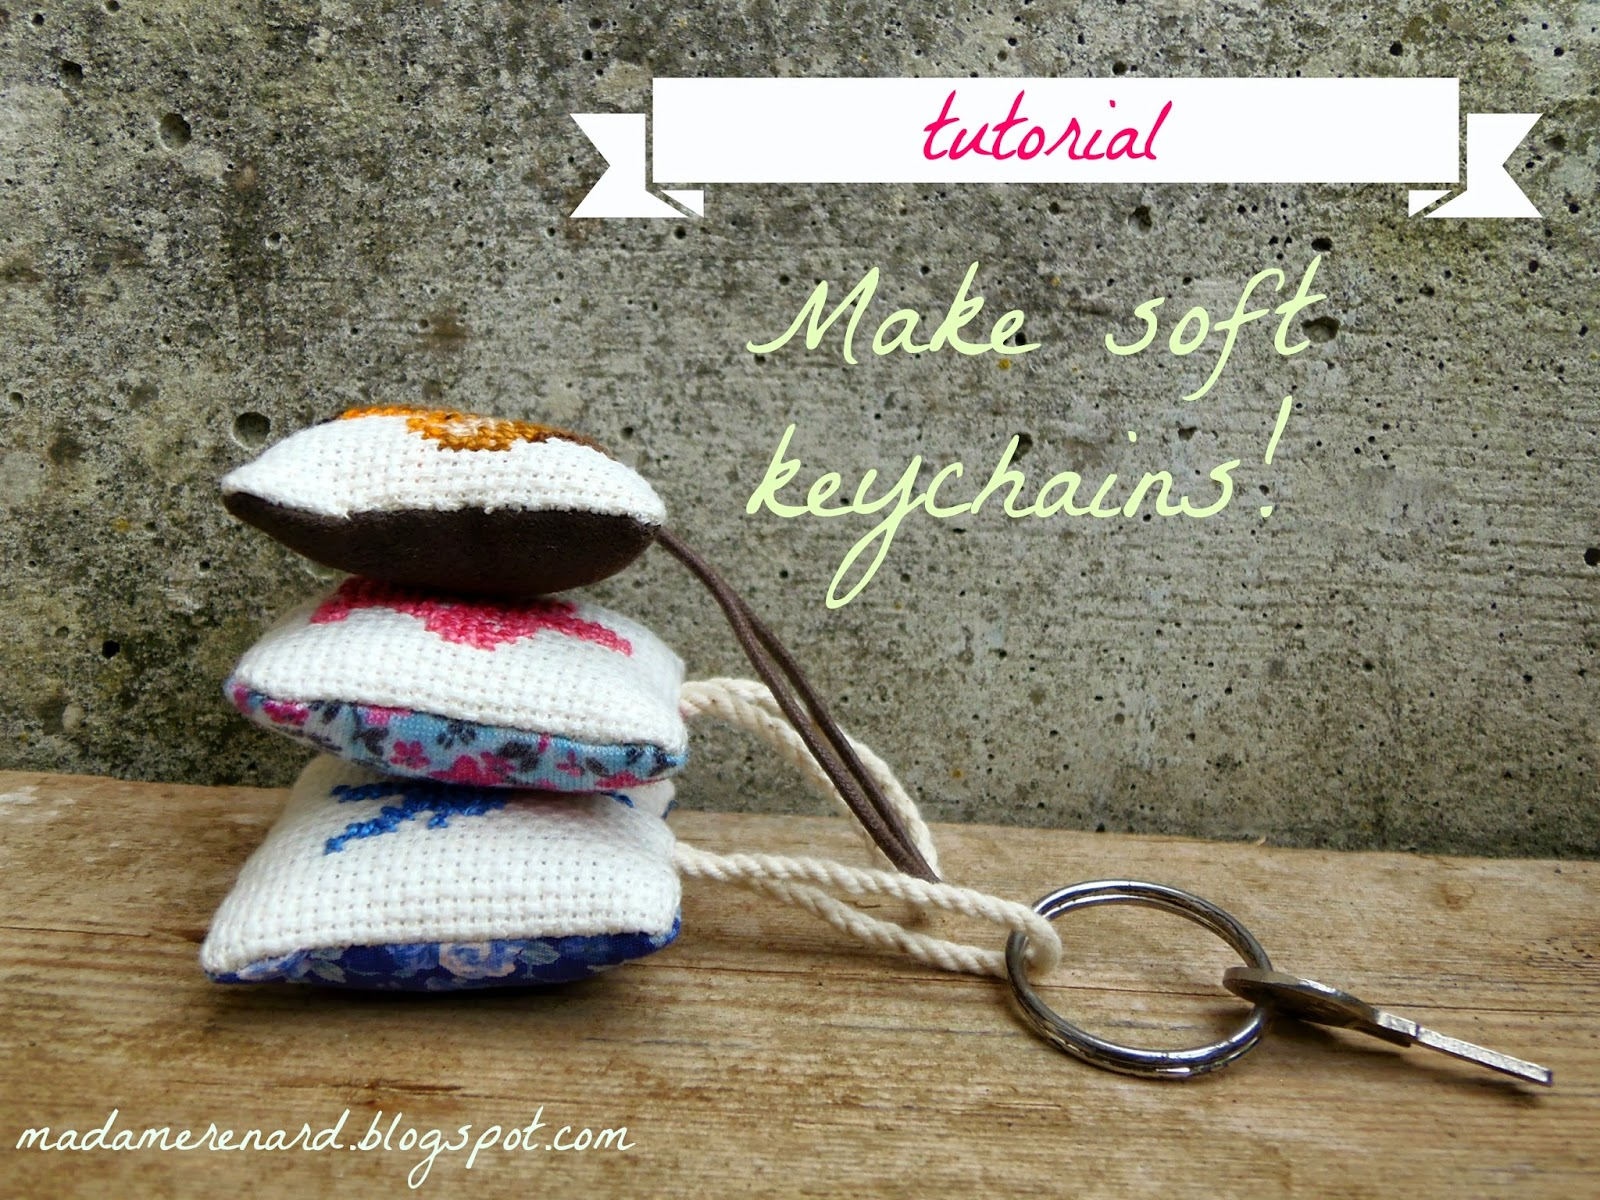 sewing tutorial for beginners - DIY keychain